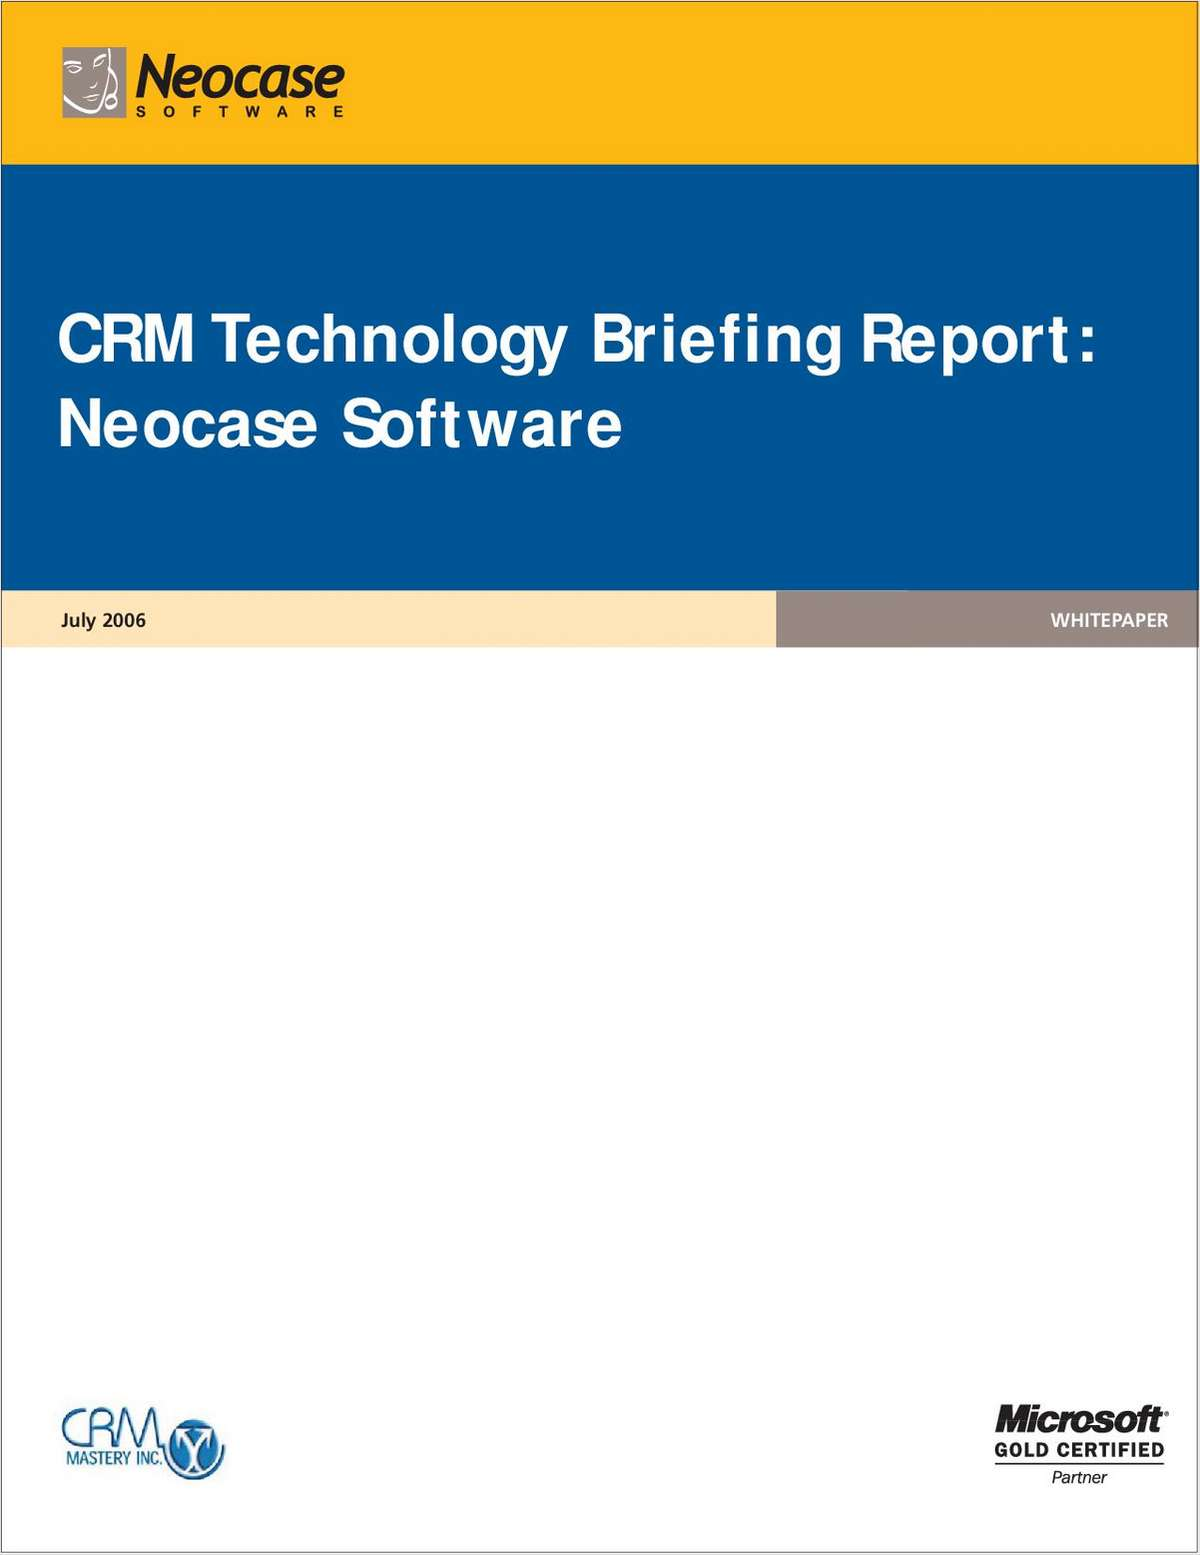 CRM Technology Briefing Report: Neocase Software for Customer Support